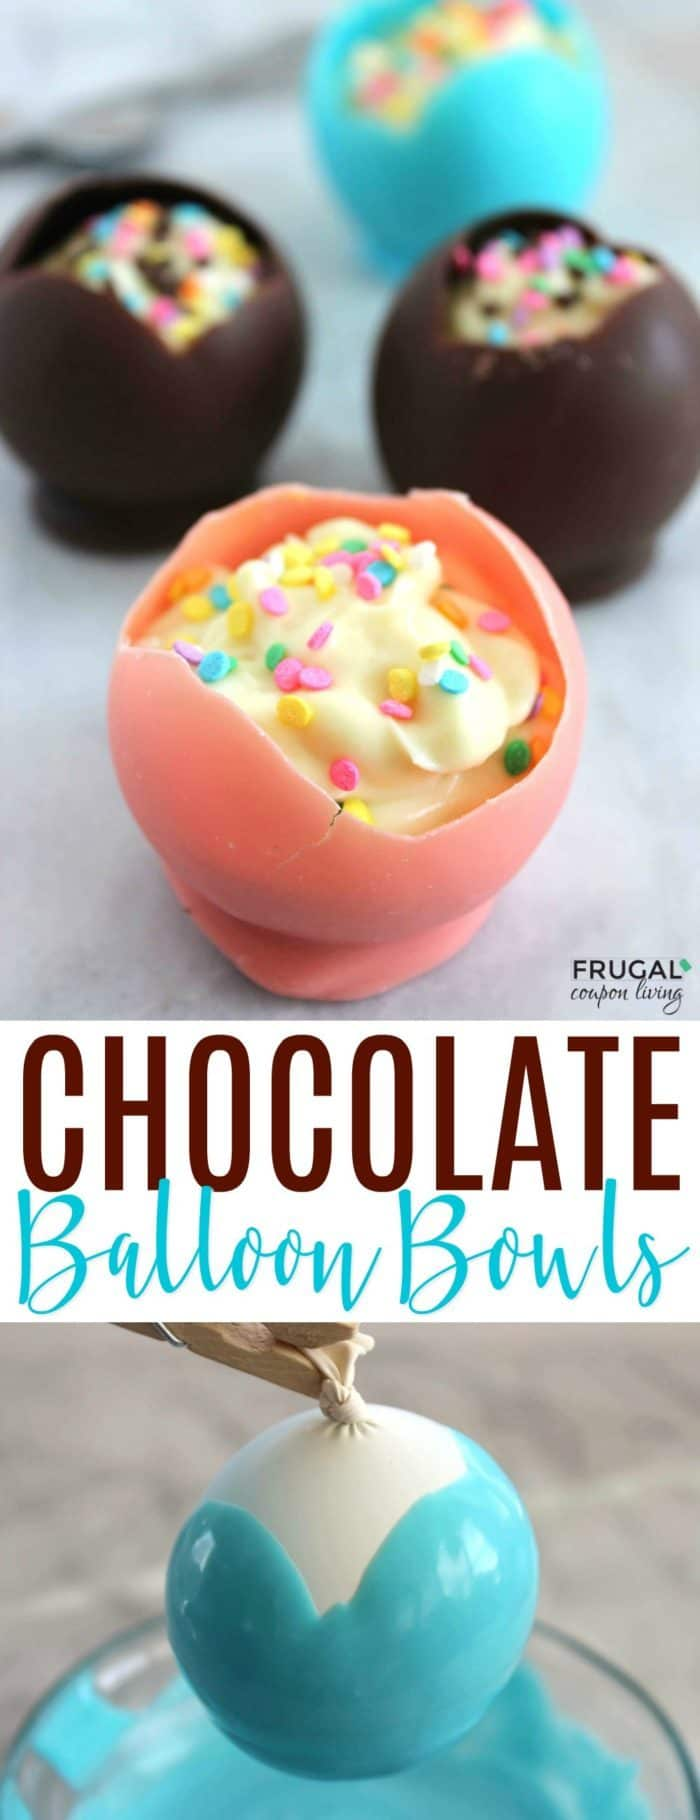 Ridiculously Easy Chocolate Pudding Bowls Made with Balloons